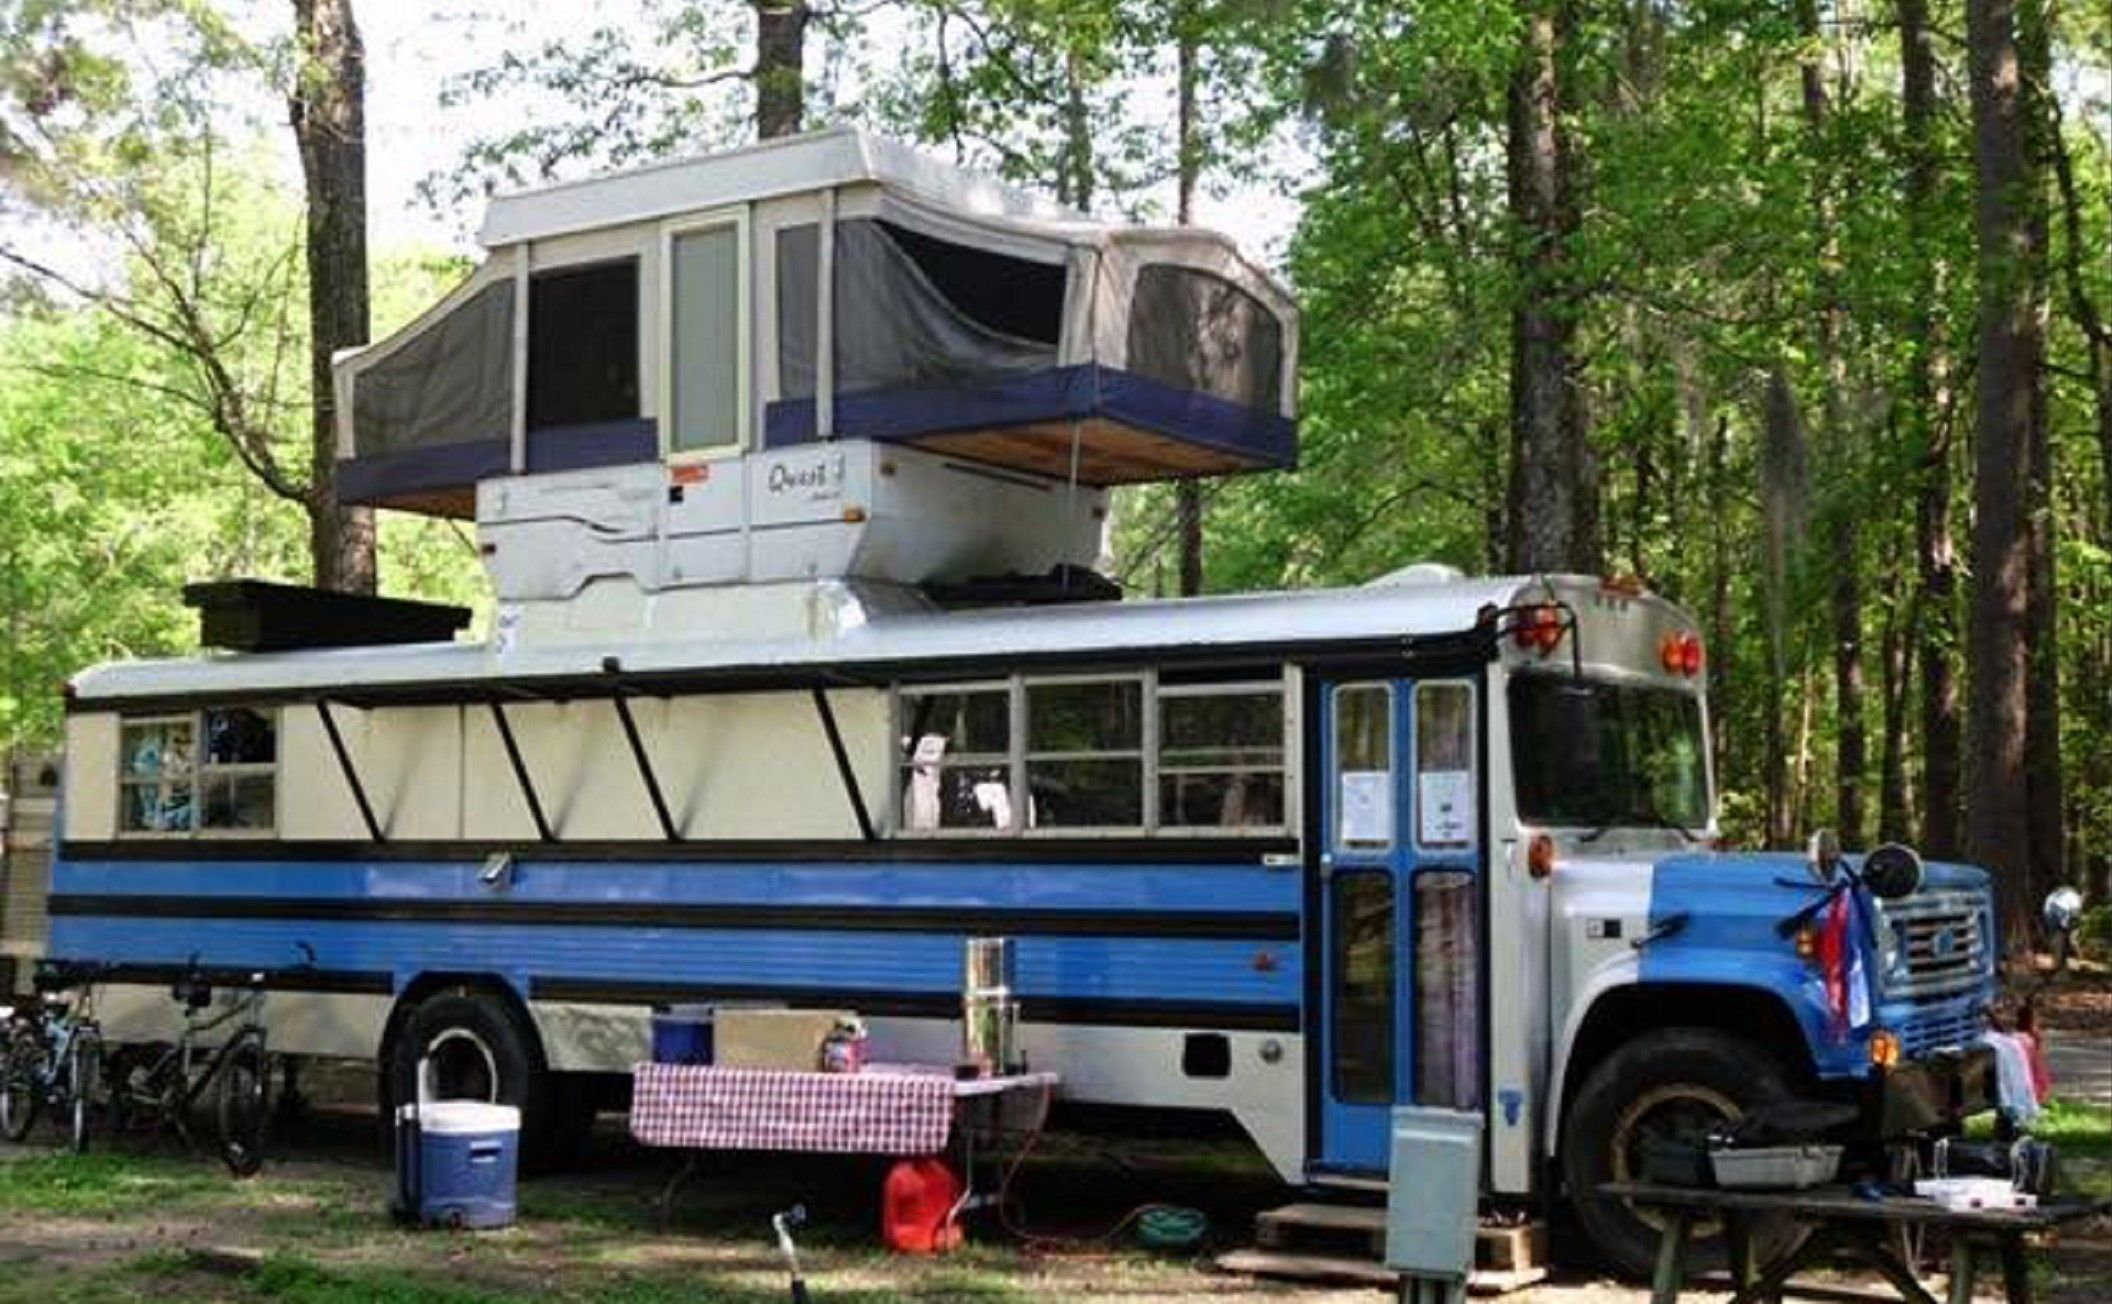 Pin By Jim Molnar On Snobus Recreational Vehicles